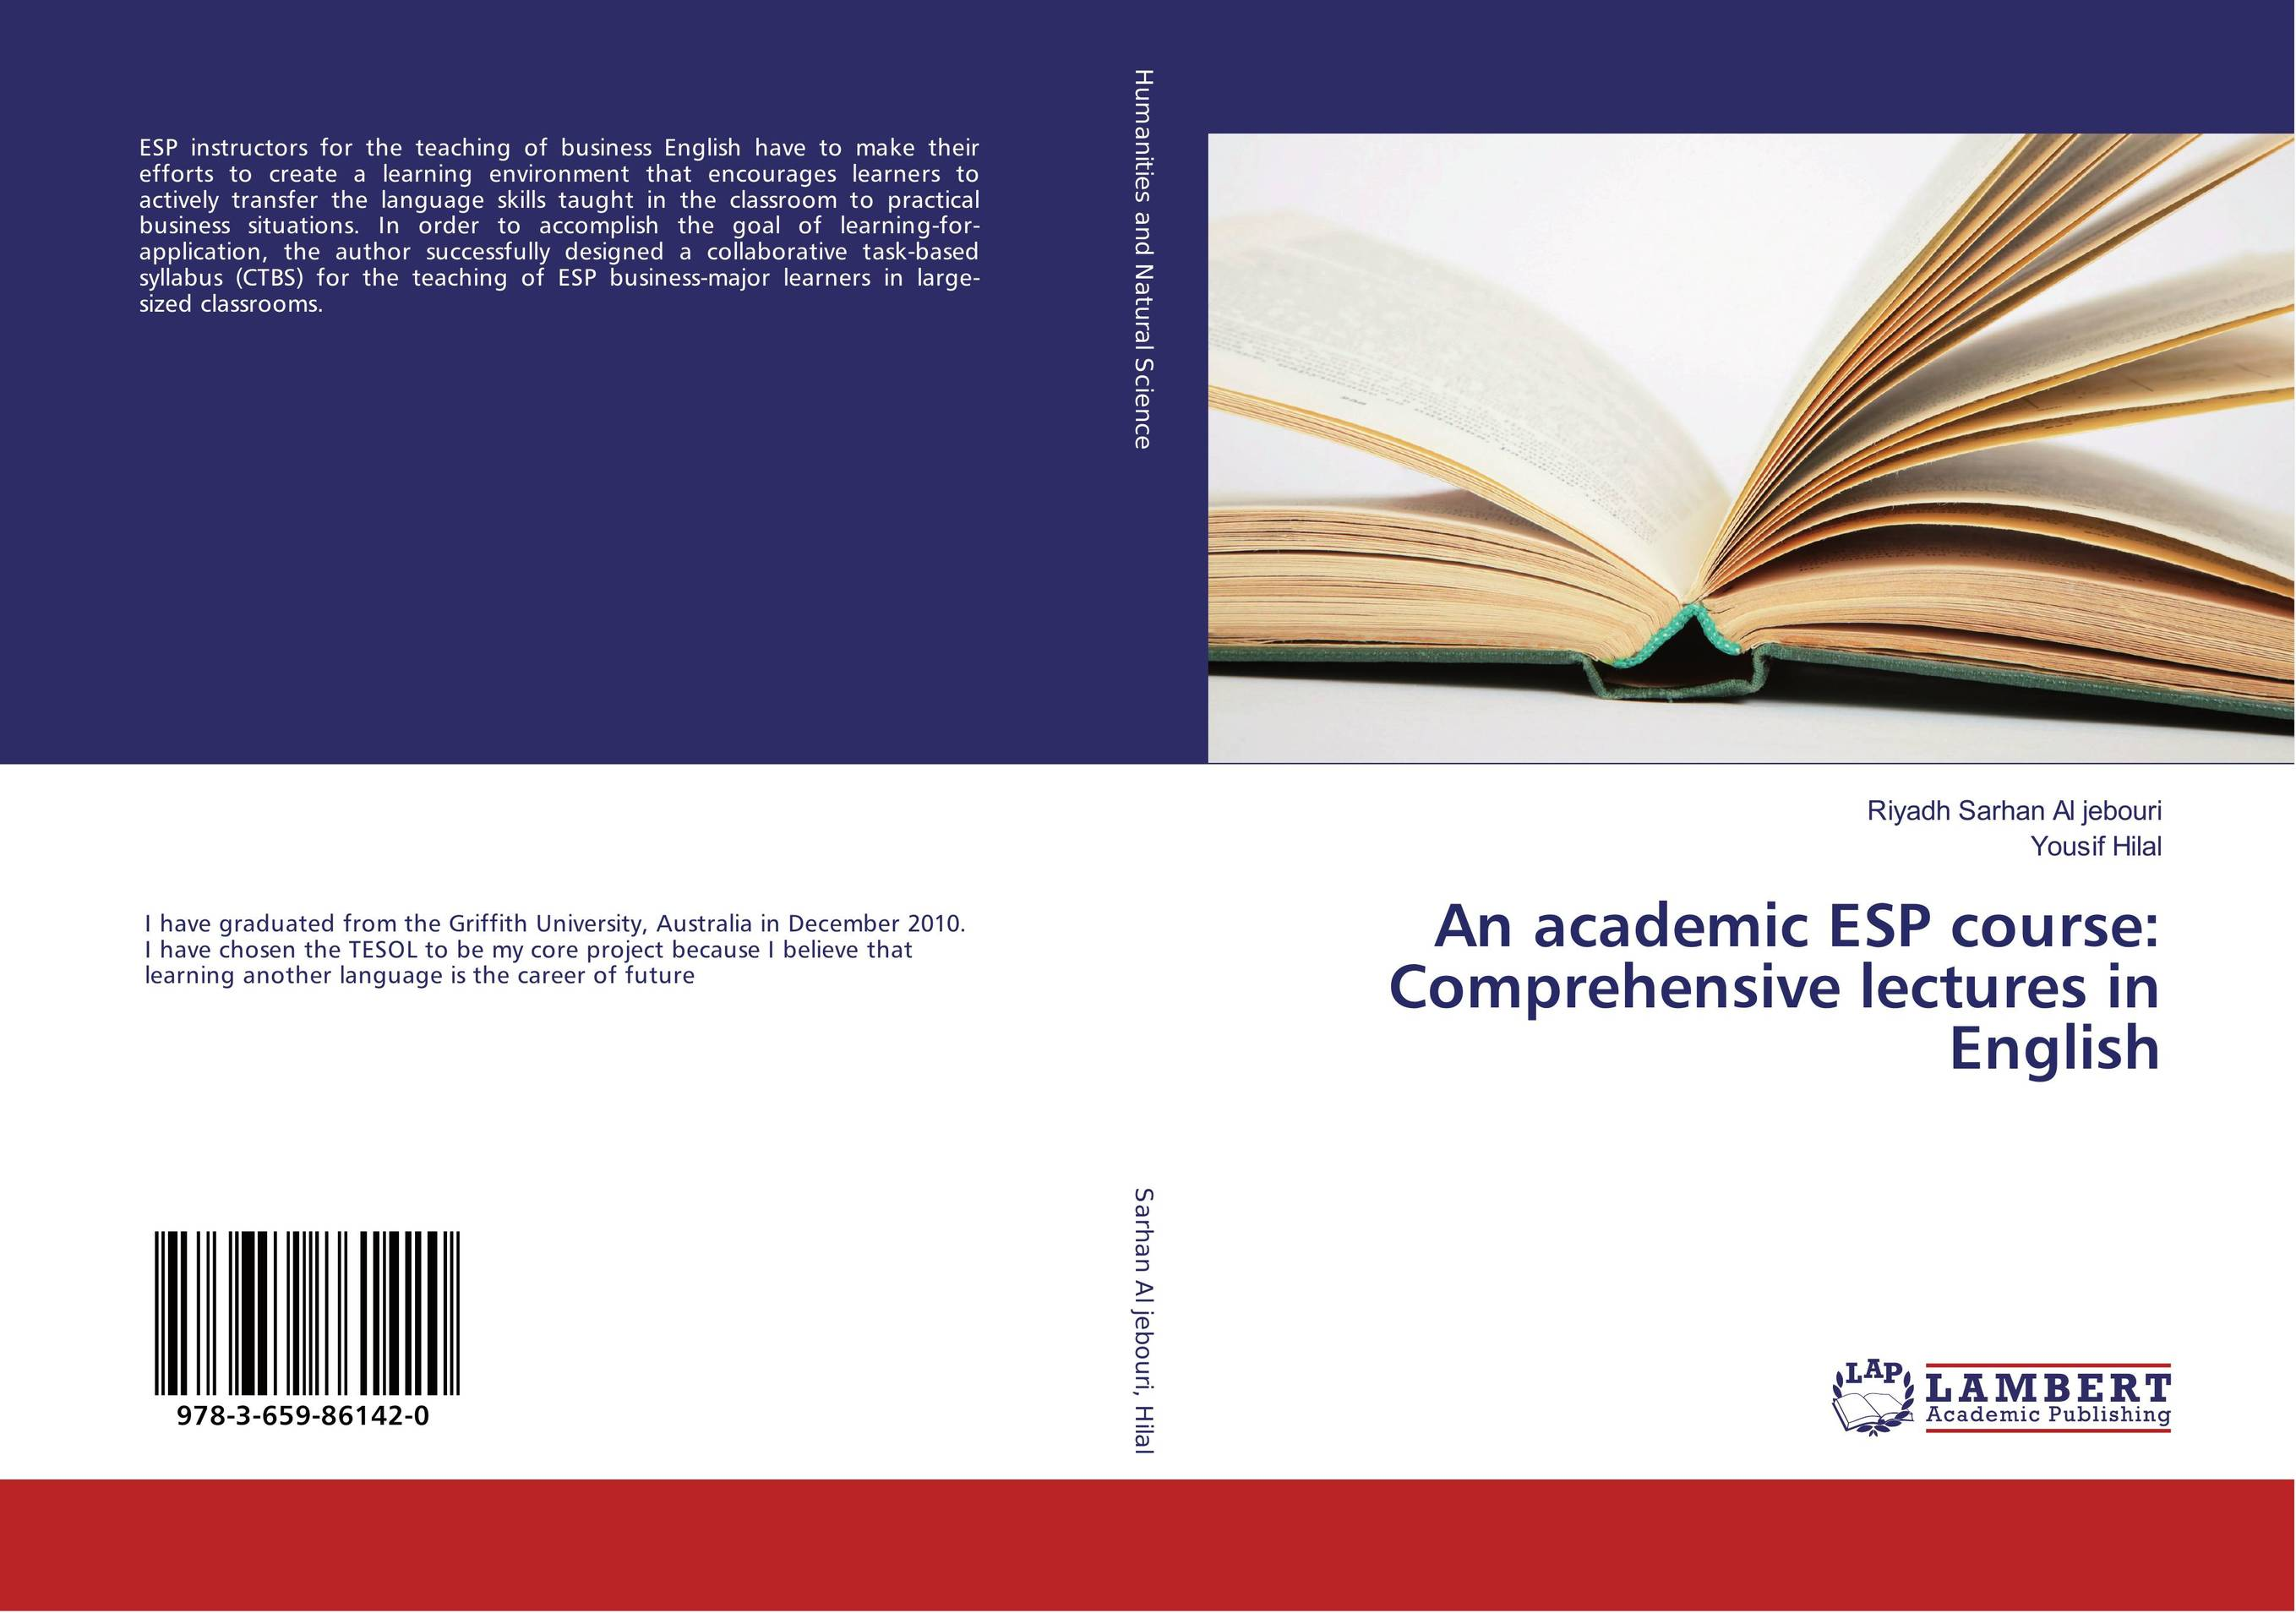 An academic ESP course: Comprehensive lectures in English mohamed sayed hassan lectures on philosophy of science